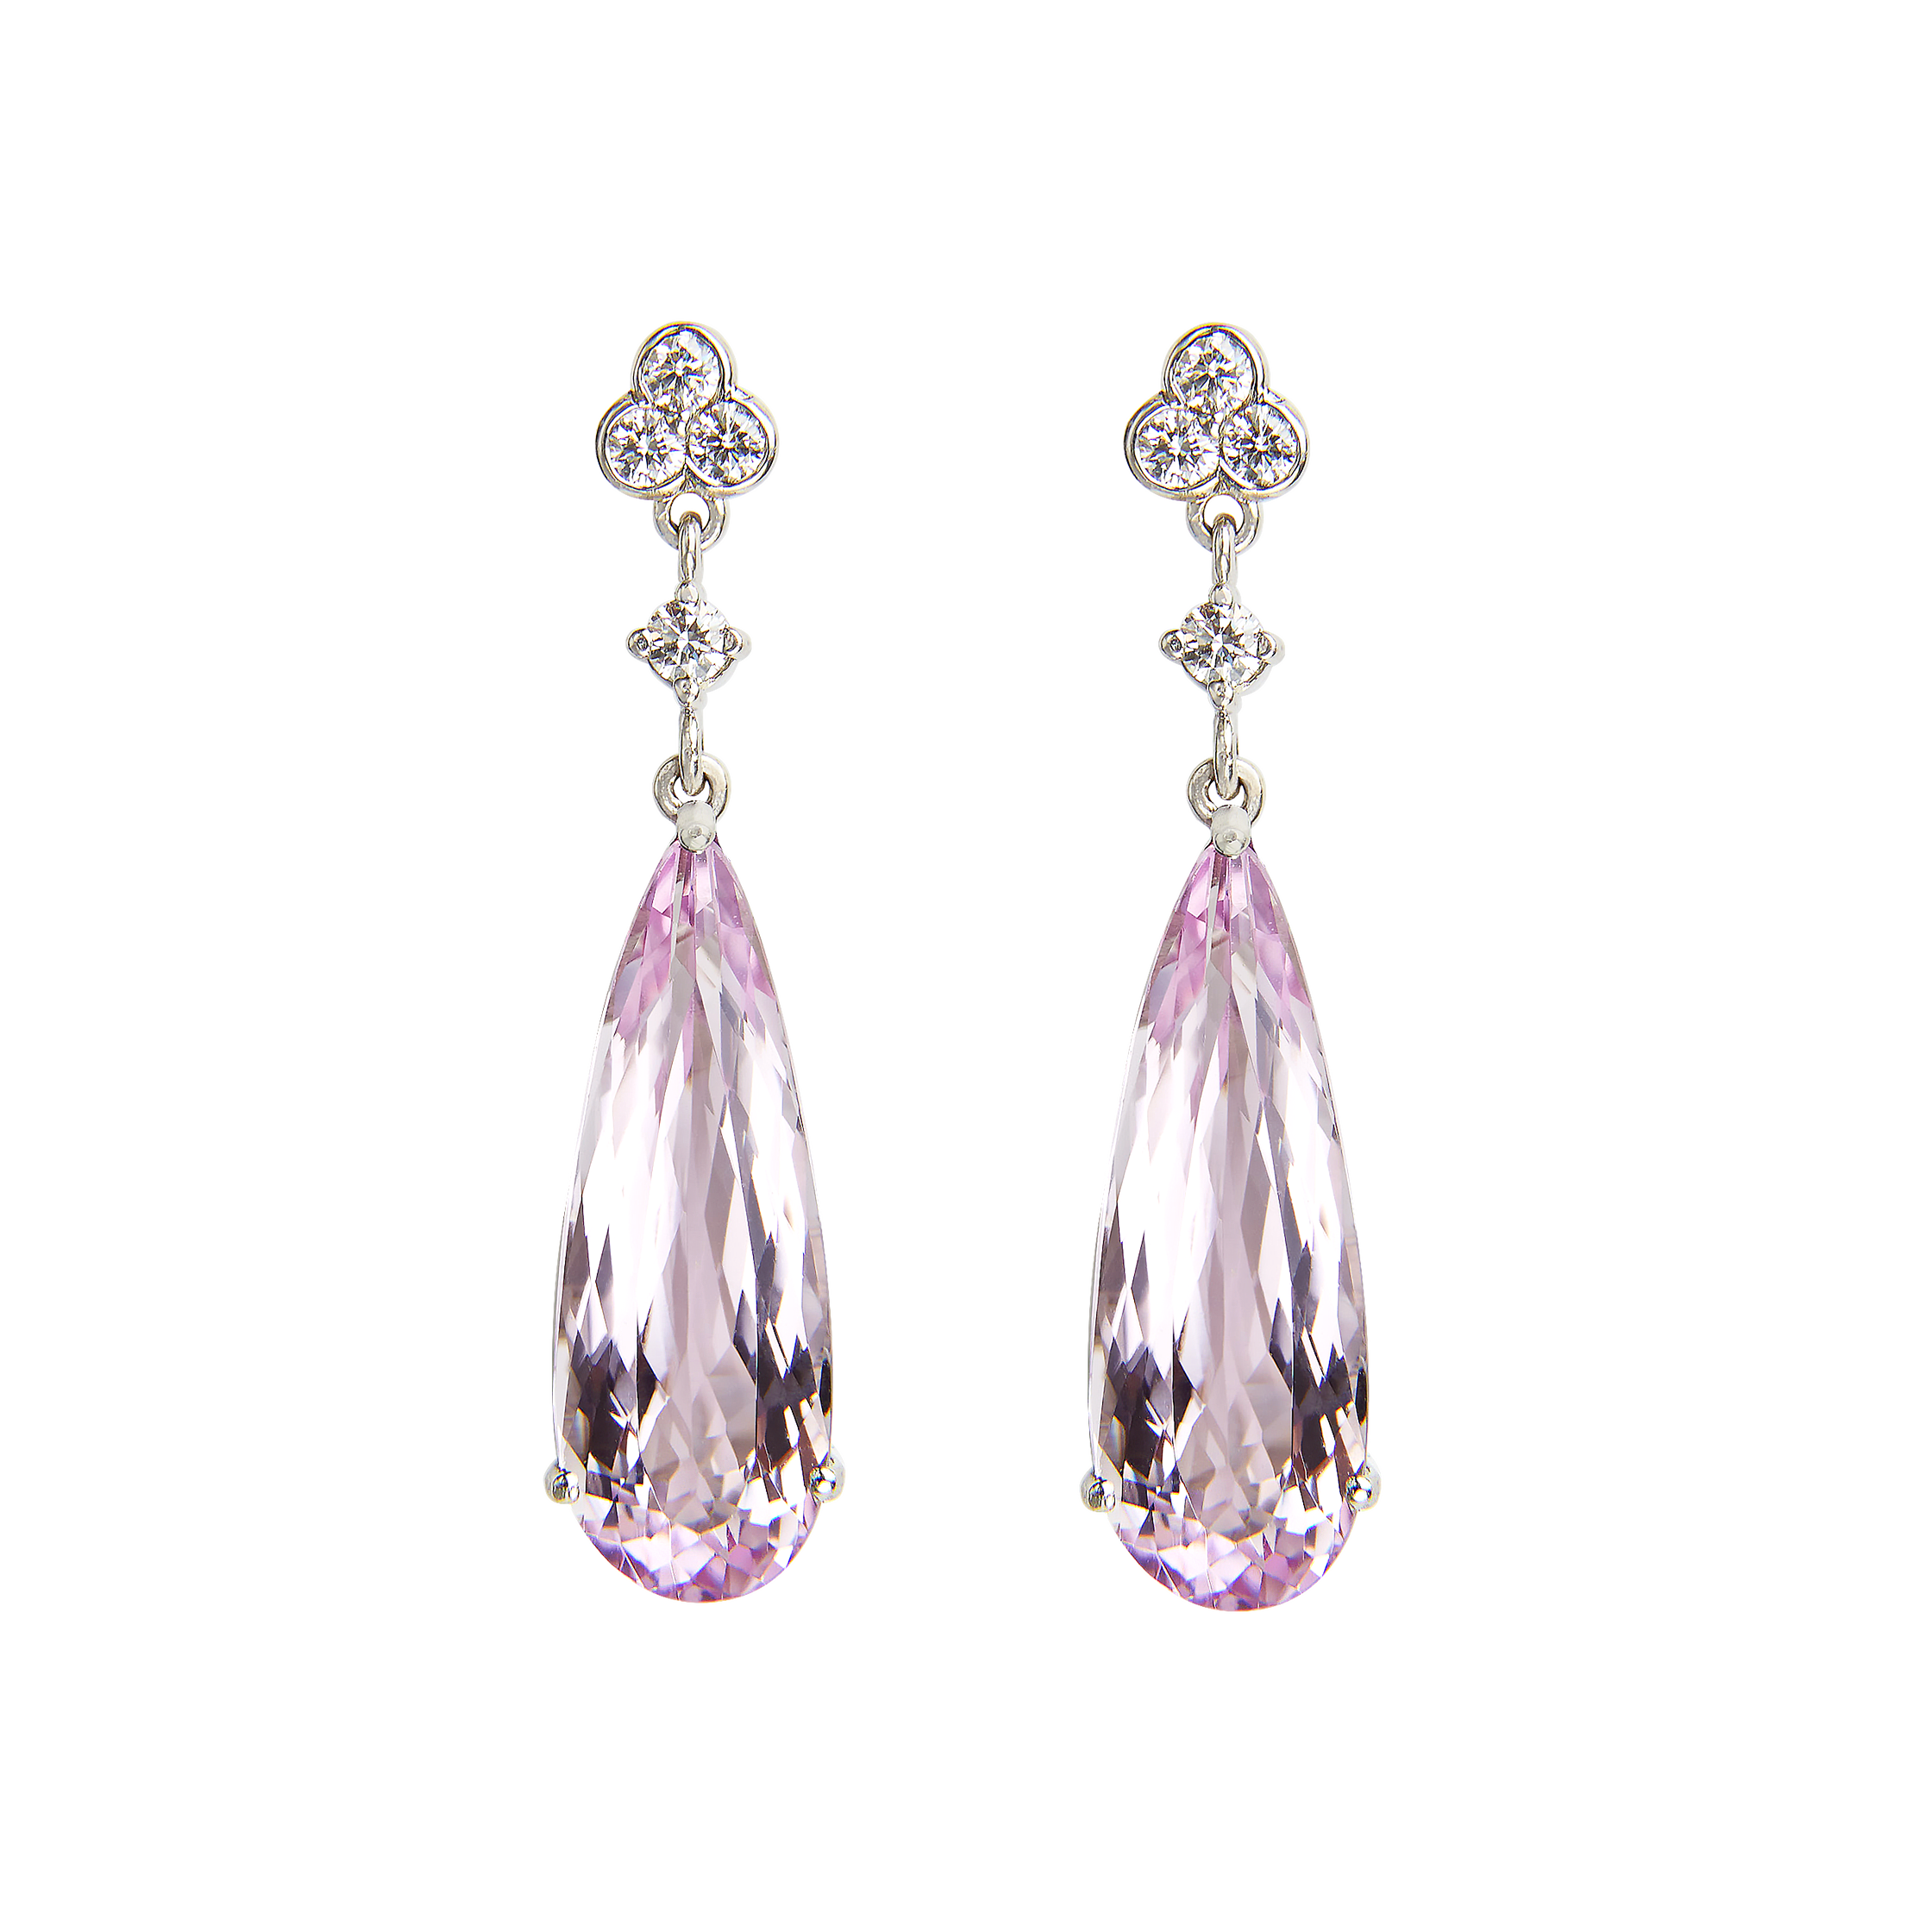 gem juwelo with gemstones earrings authentic com gems kunzite elegant